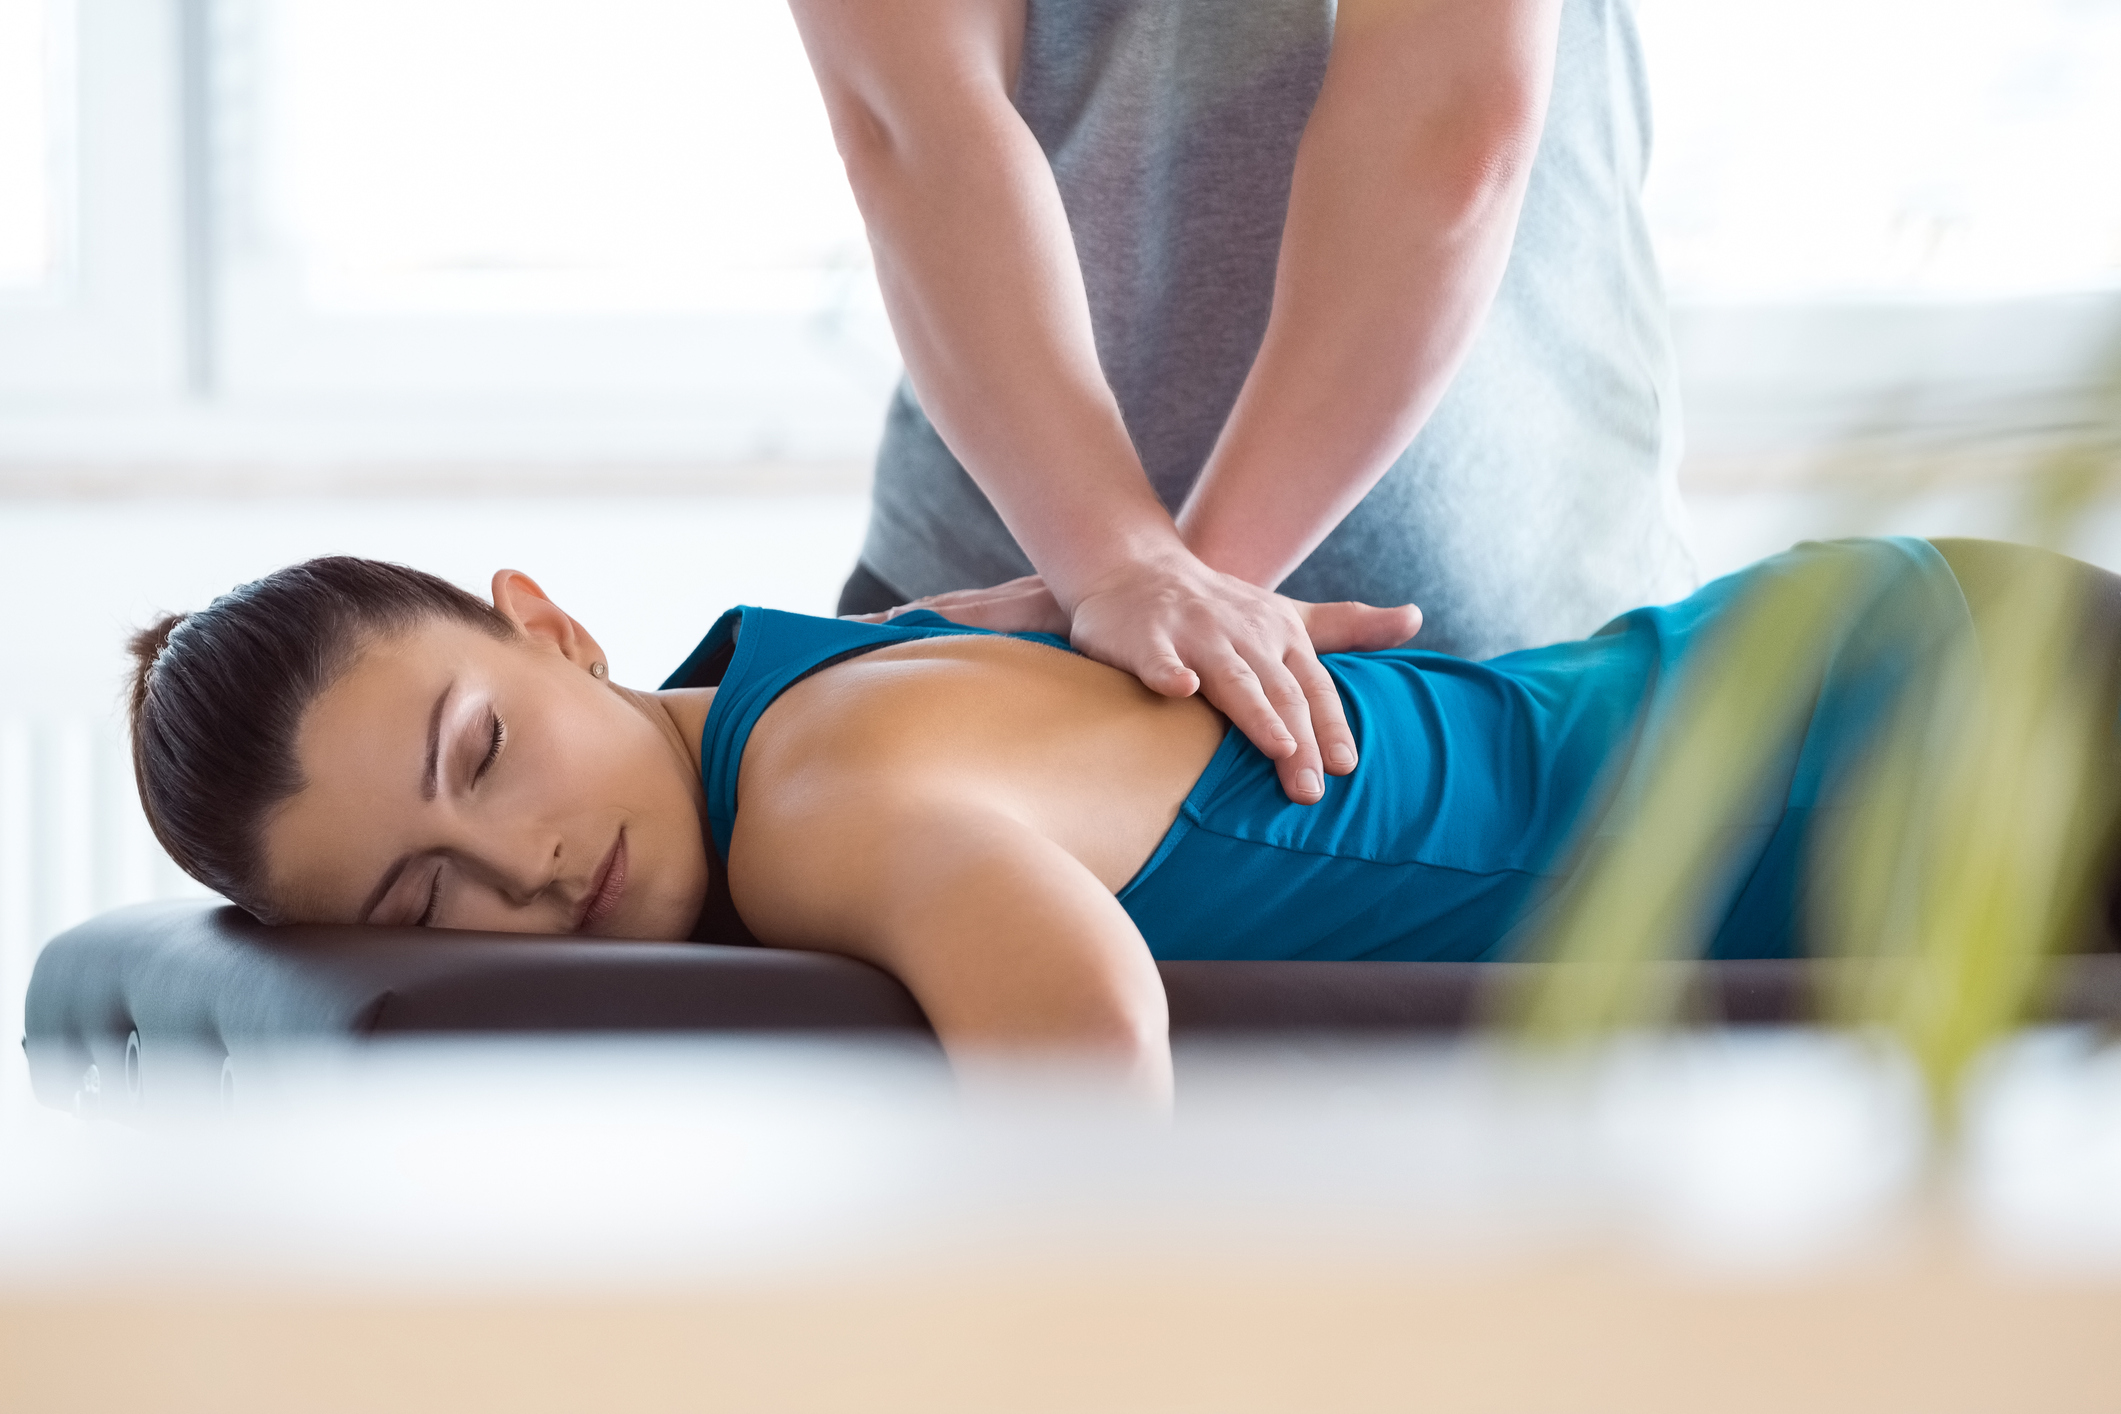 Woman lying on a chiropractor's table having her back manually adjusted